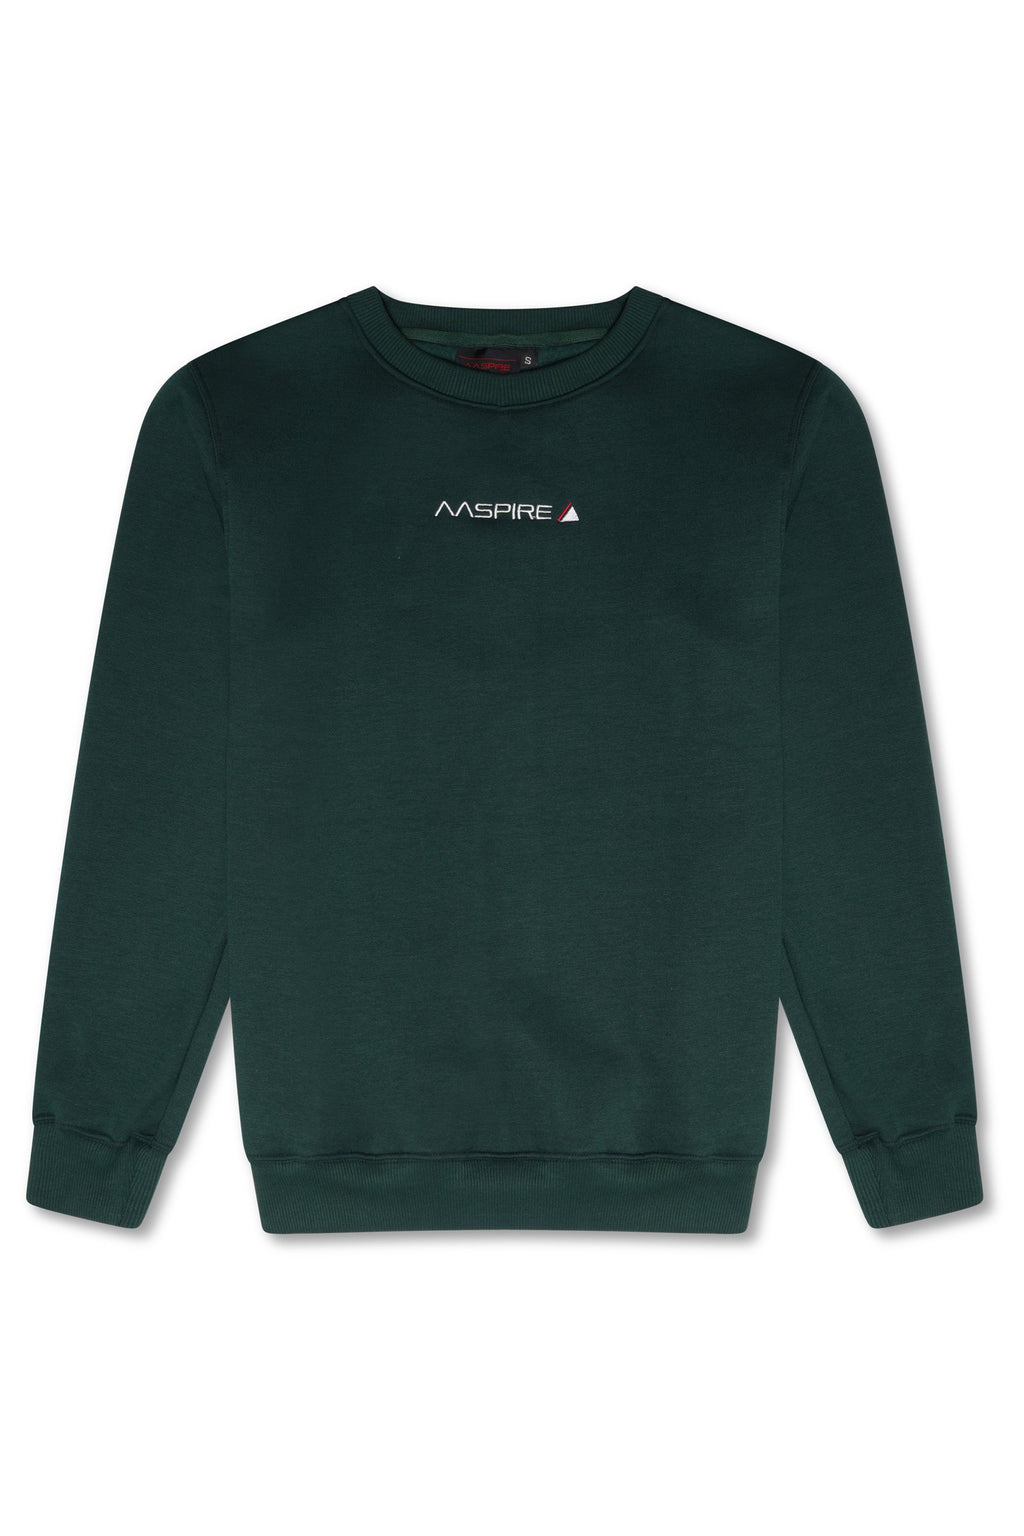 AASPIRE CREW NECK SWEATSHIRT (GREEN)